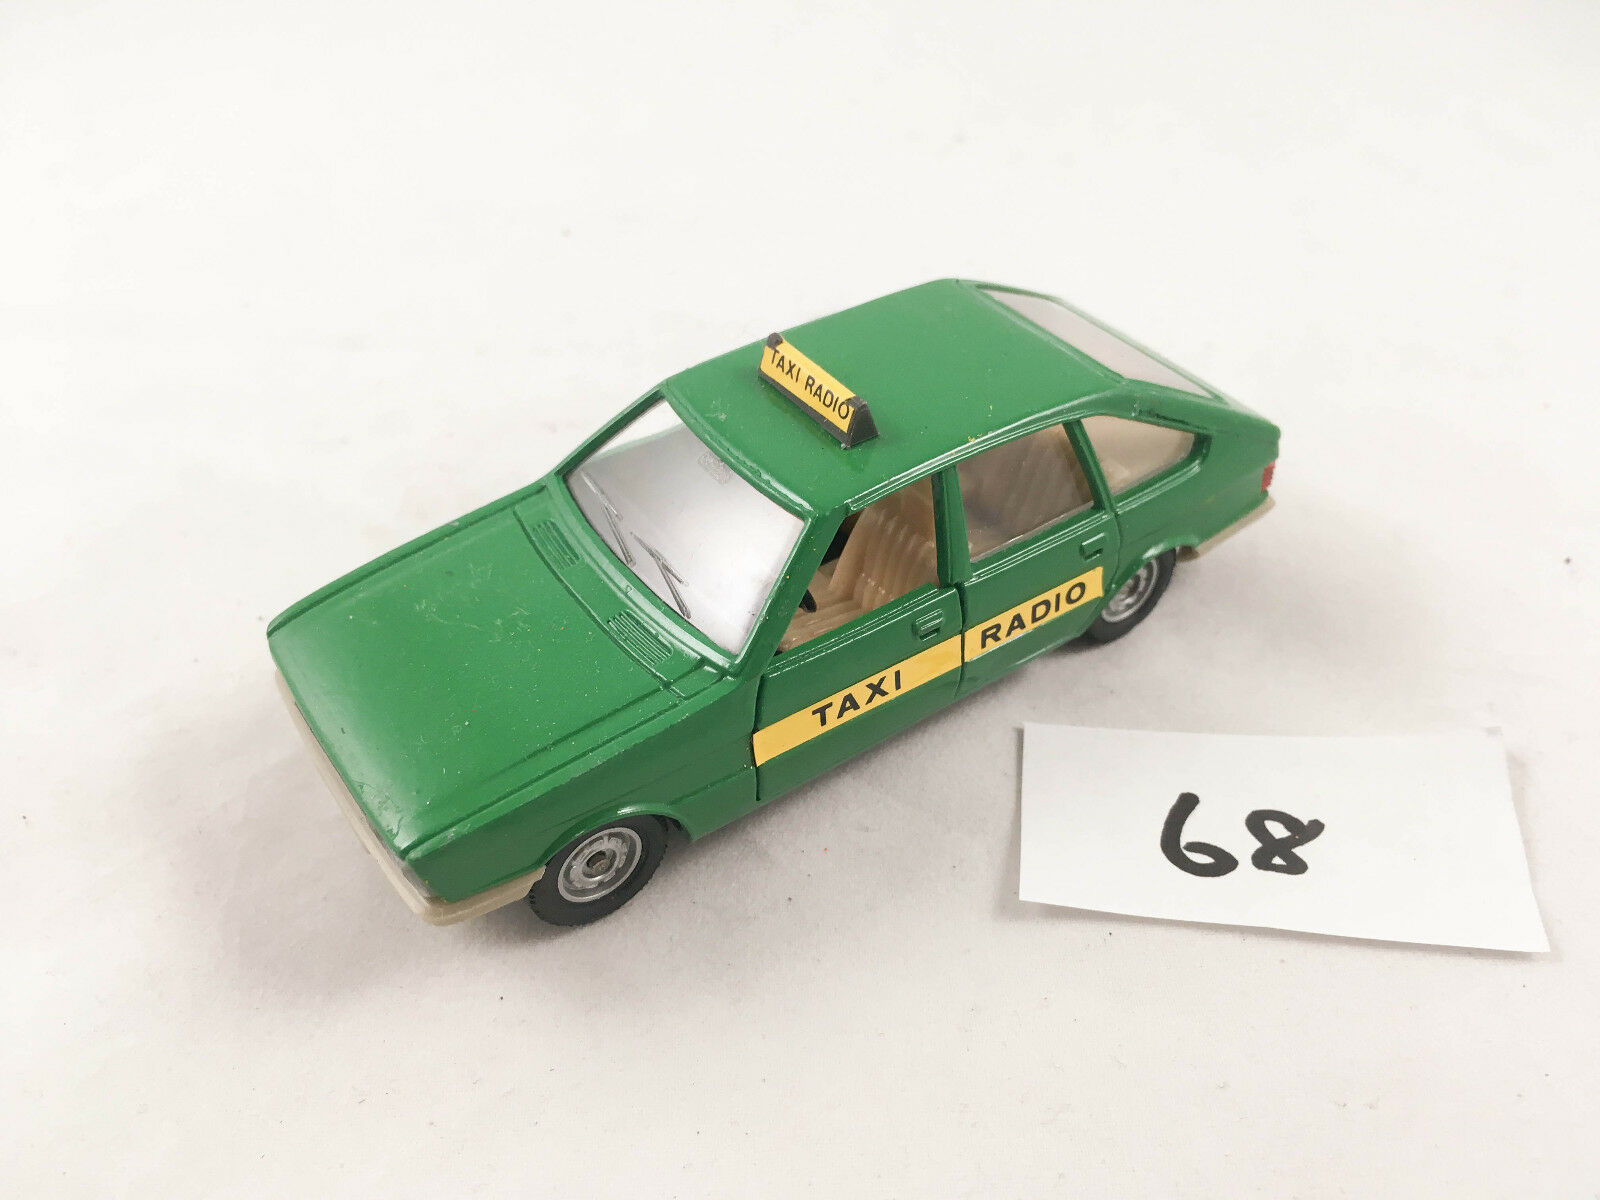 RARE VINTAGE SOLIDO SIMCA 1308 GT TAXI RADIO 1 43 SCALE DIECAST GREEN